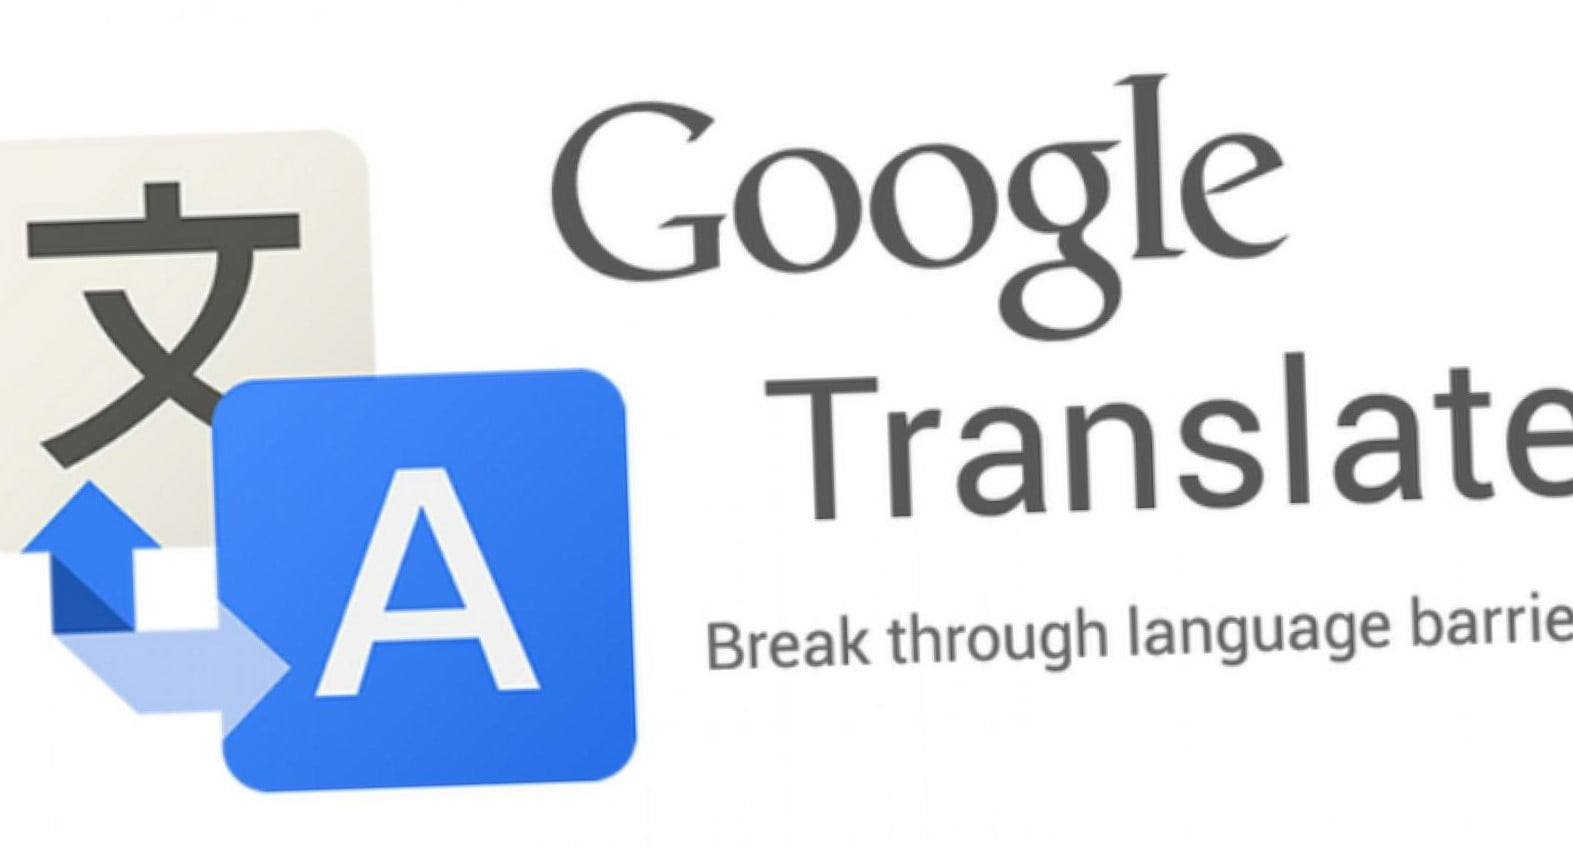 How to change or modify the voice of the translator of Google easily?